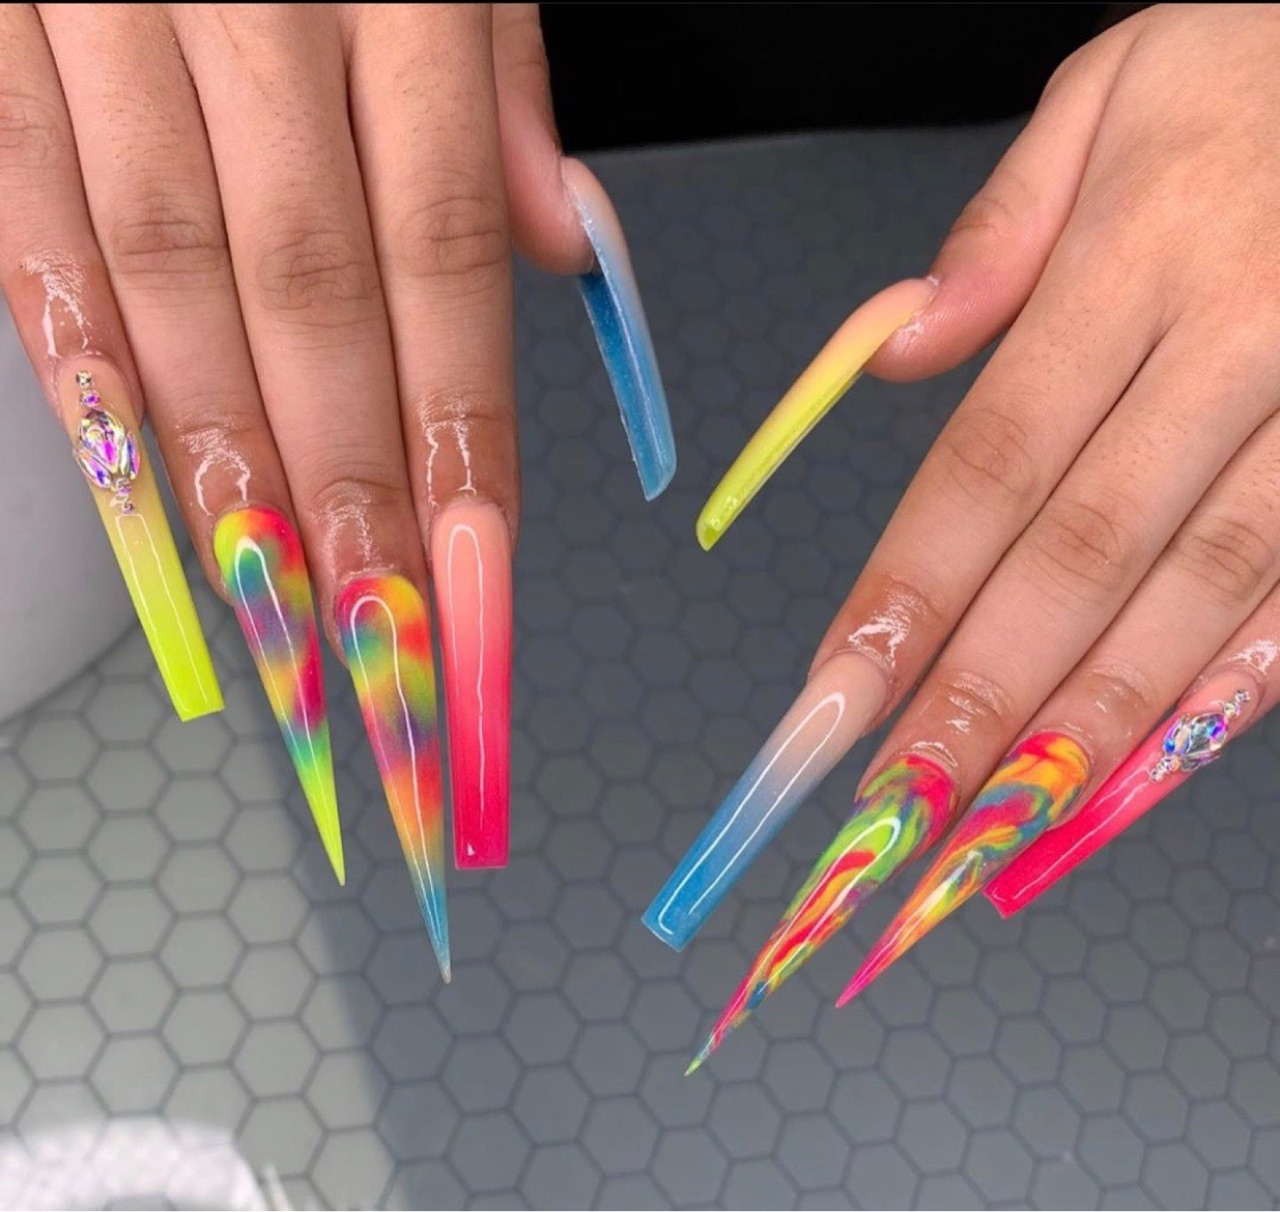 acrylics, essentials, and pedicures image